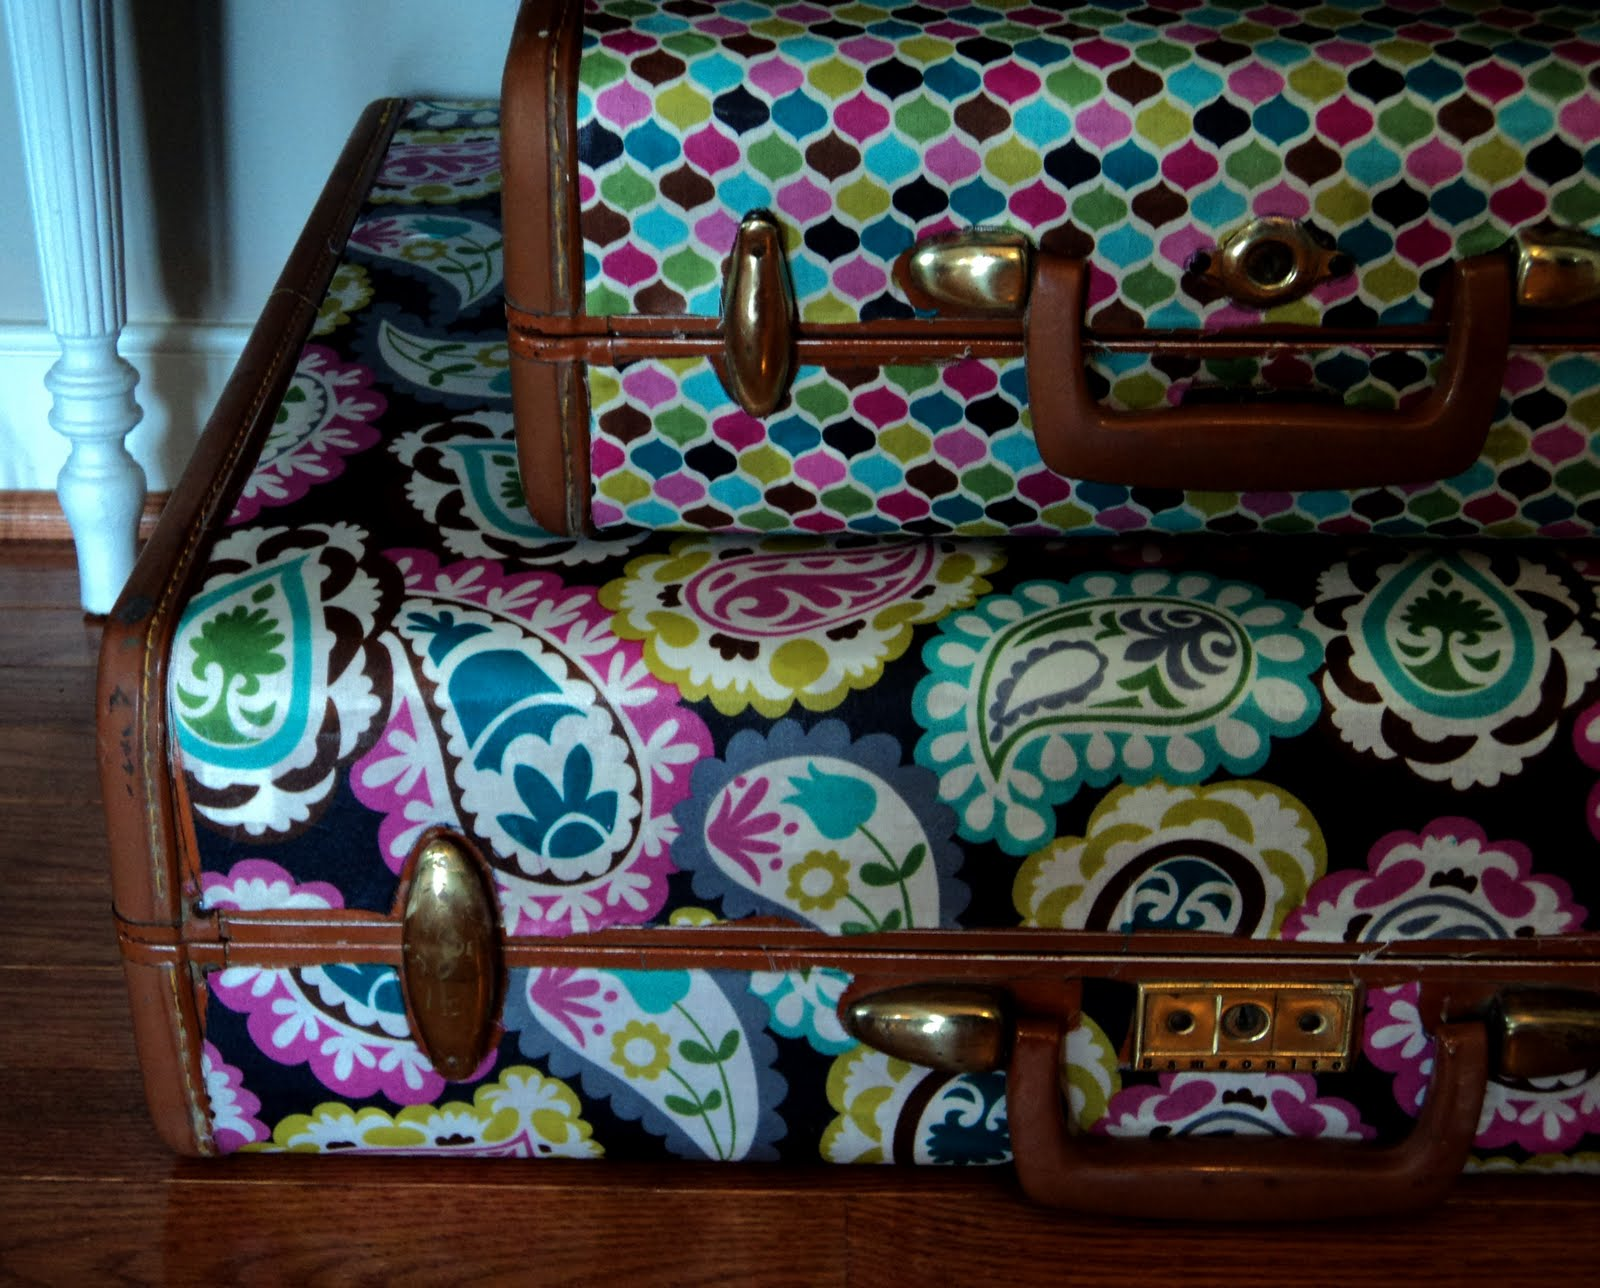 Vintage Decorative Suitcases Upcycled Home Décor Giving New Life To Vintage Suitcases